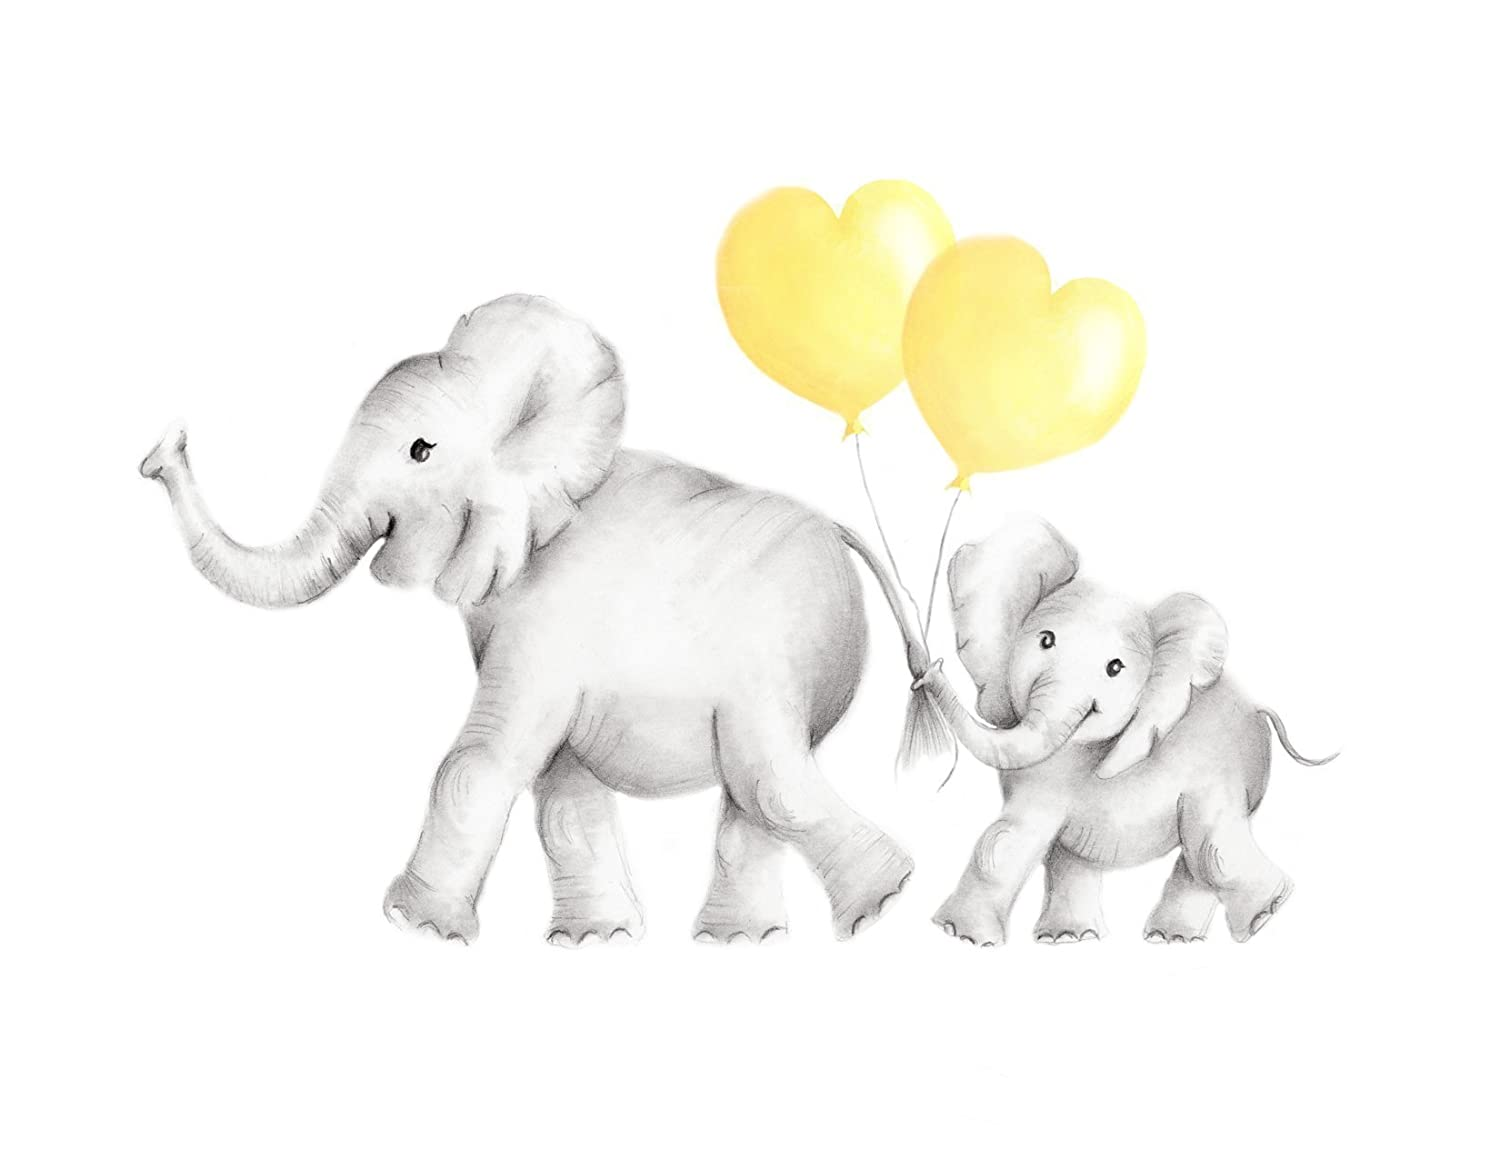 Elephant Nursery Art Print, Mother and Baby with Heart Balloons, Various Sizes Available, UNFRAMED PRINT